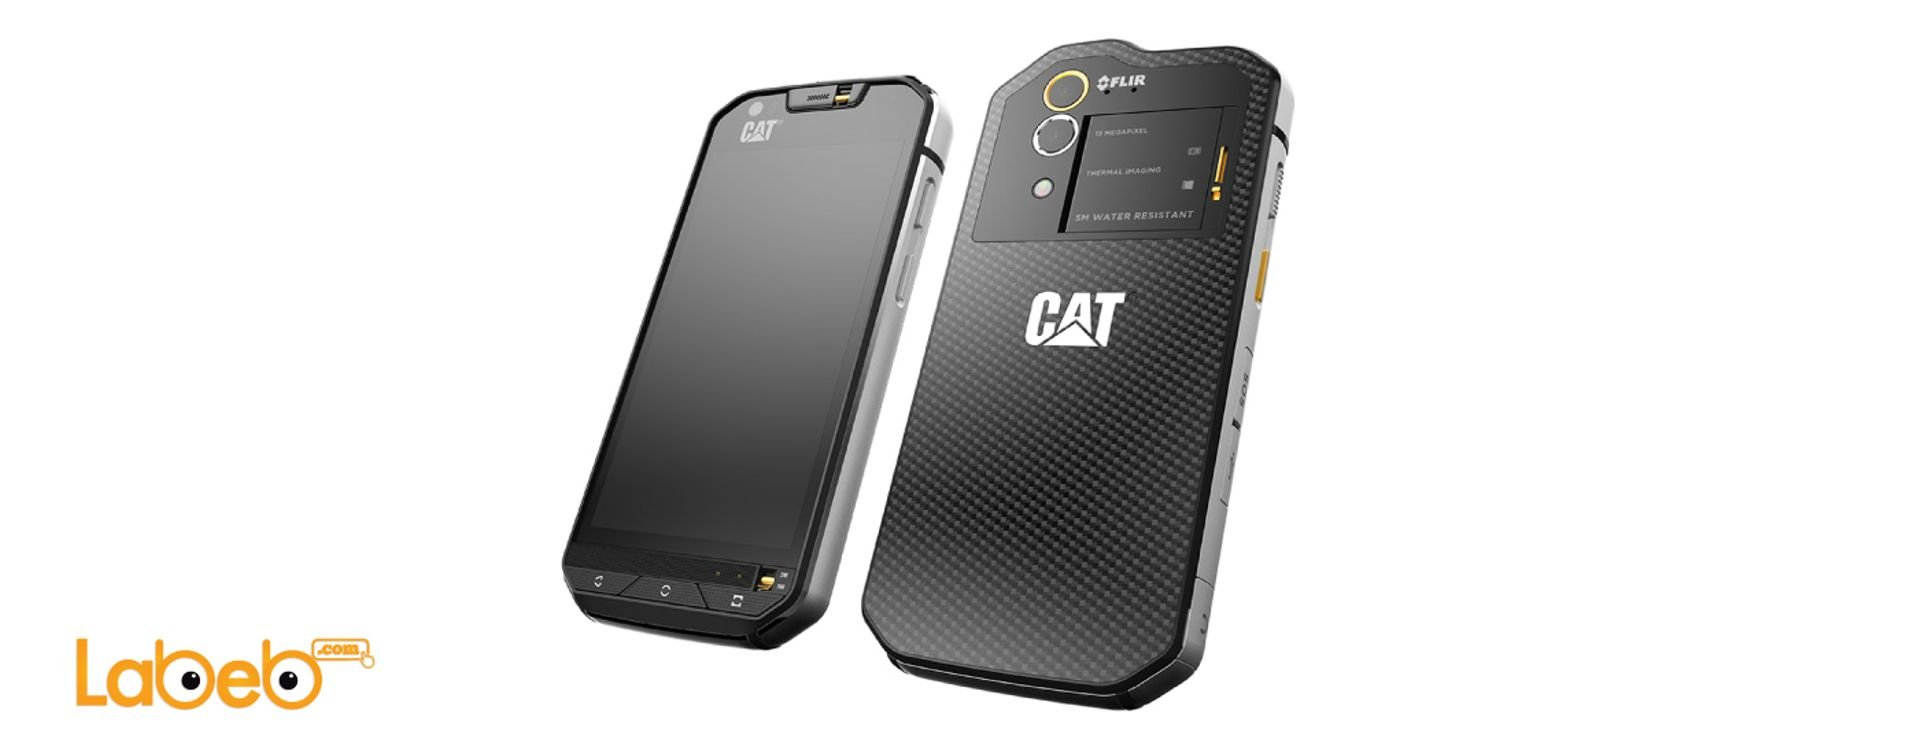 Cat S60 the First Smartphone with Thermal Imaging.